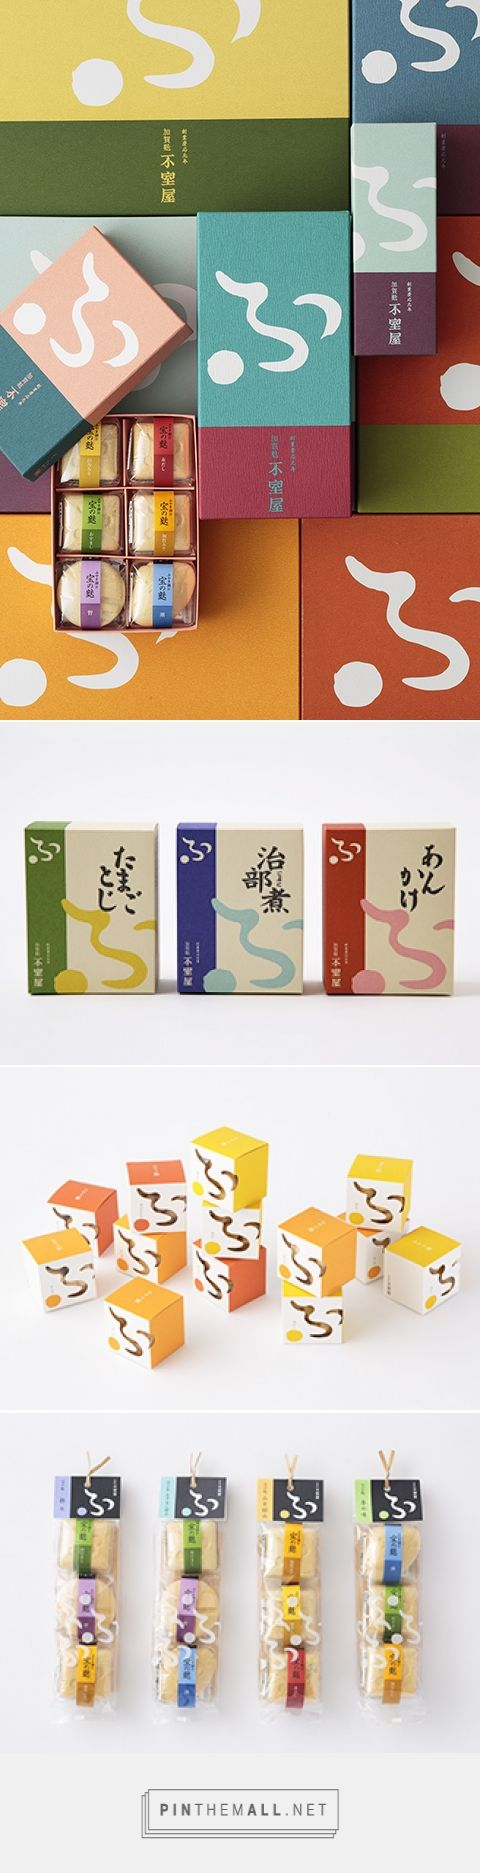 KAGAFU FUMUROYA via AWATSUJI design curated by Packaging Diva PD.  Love this…